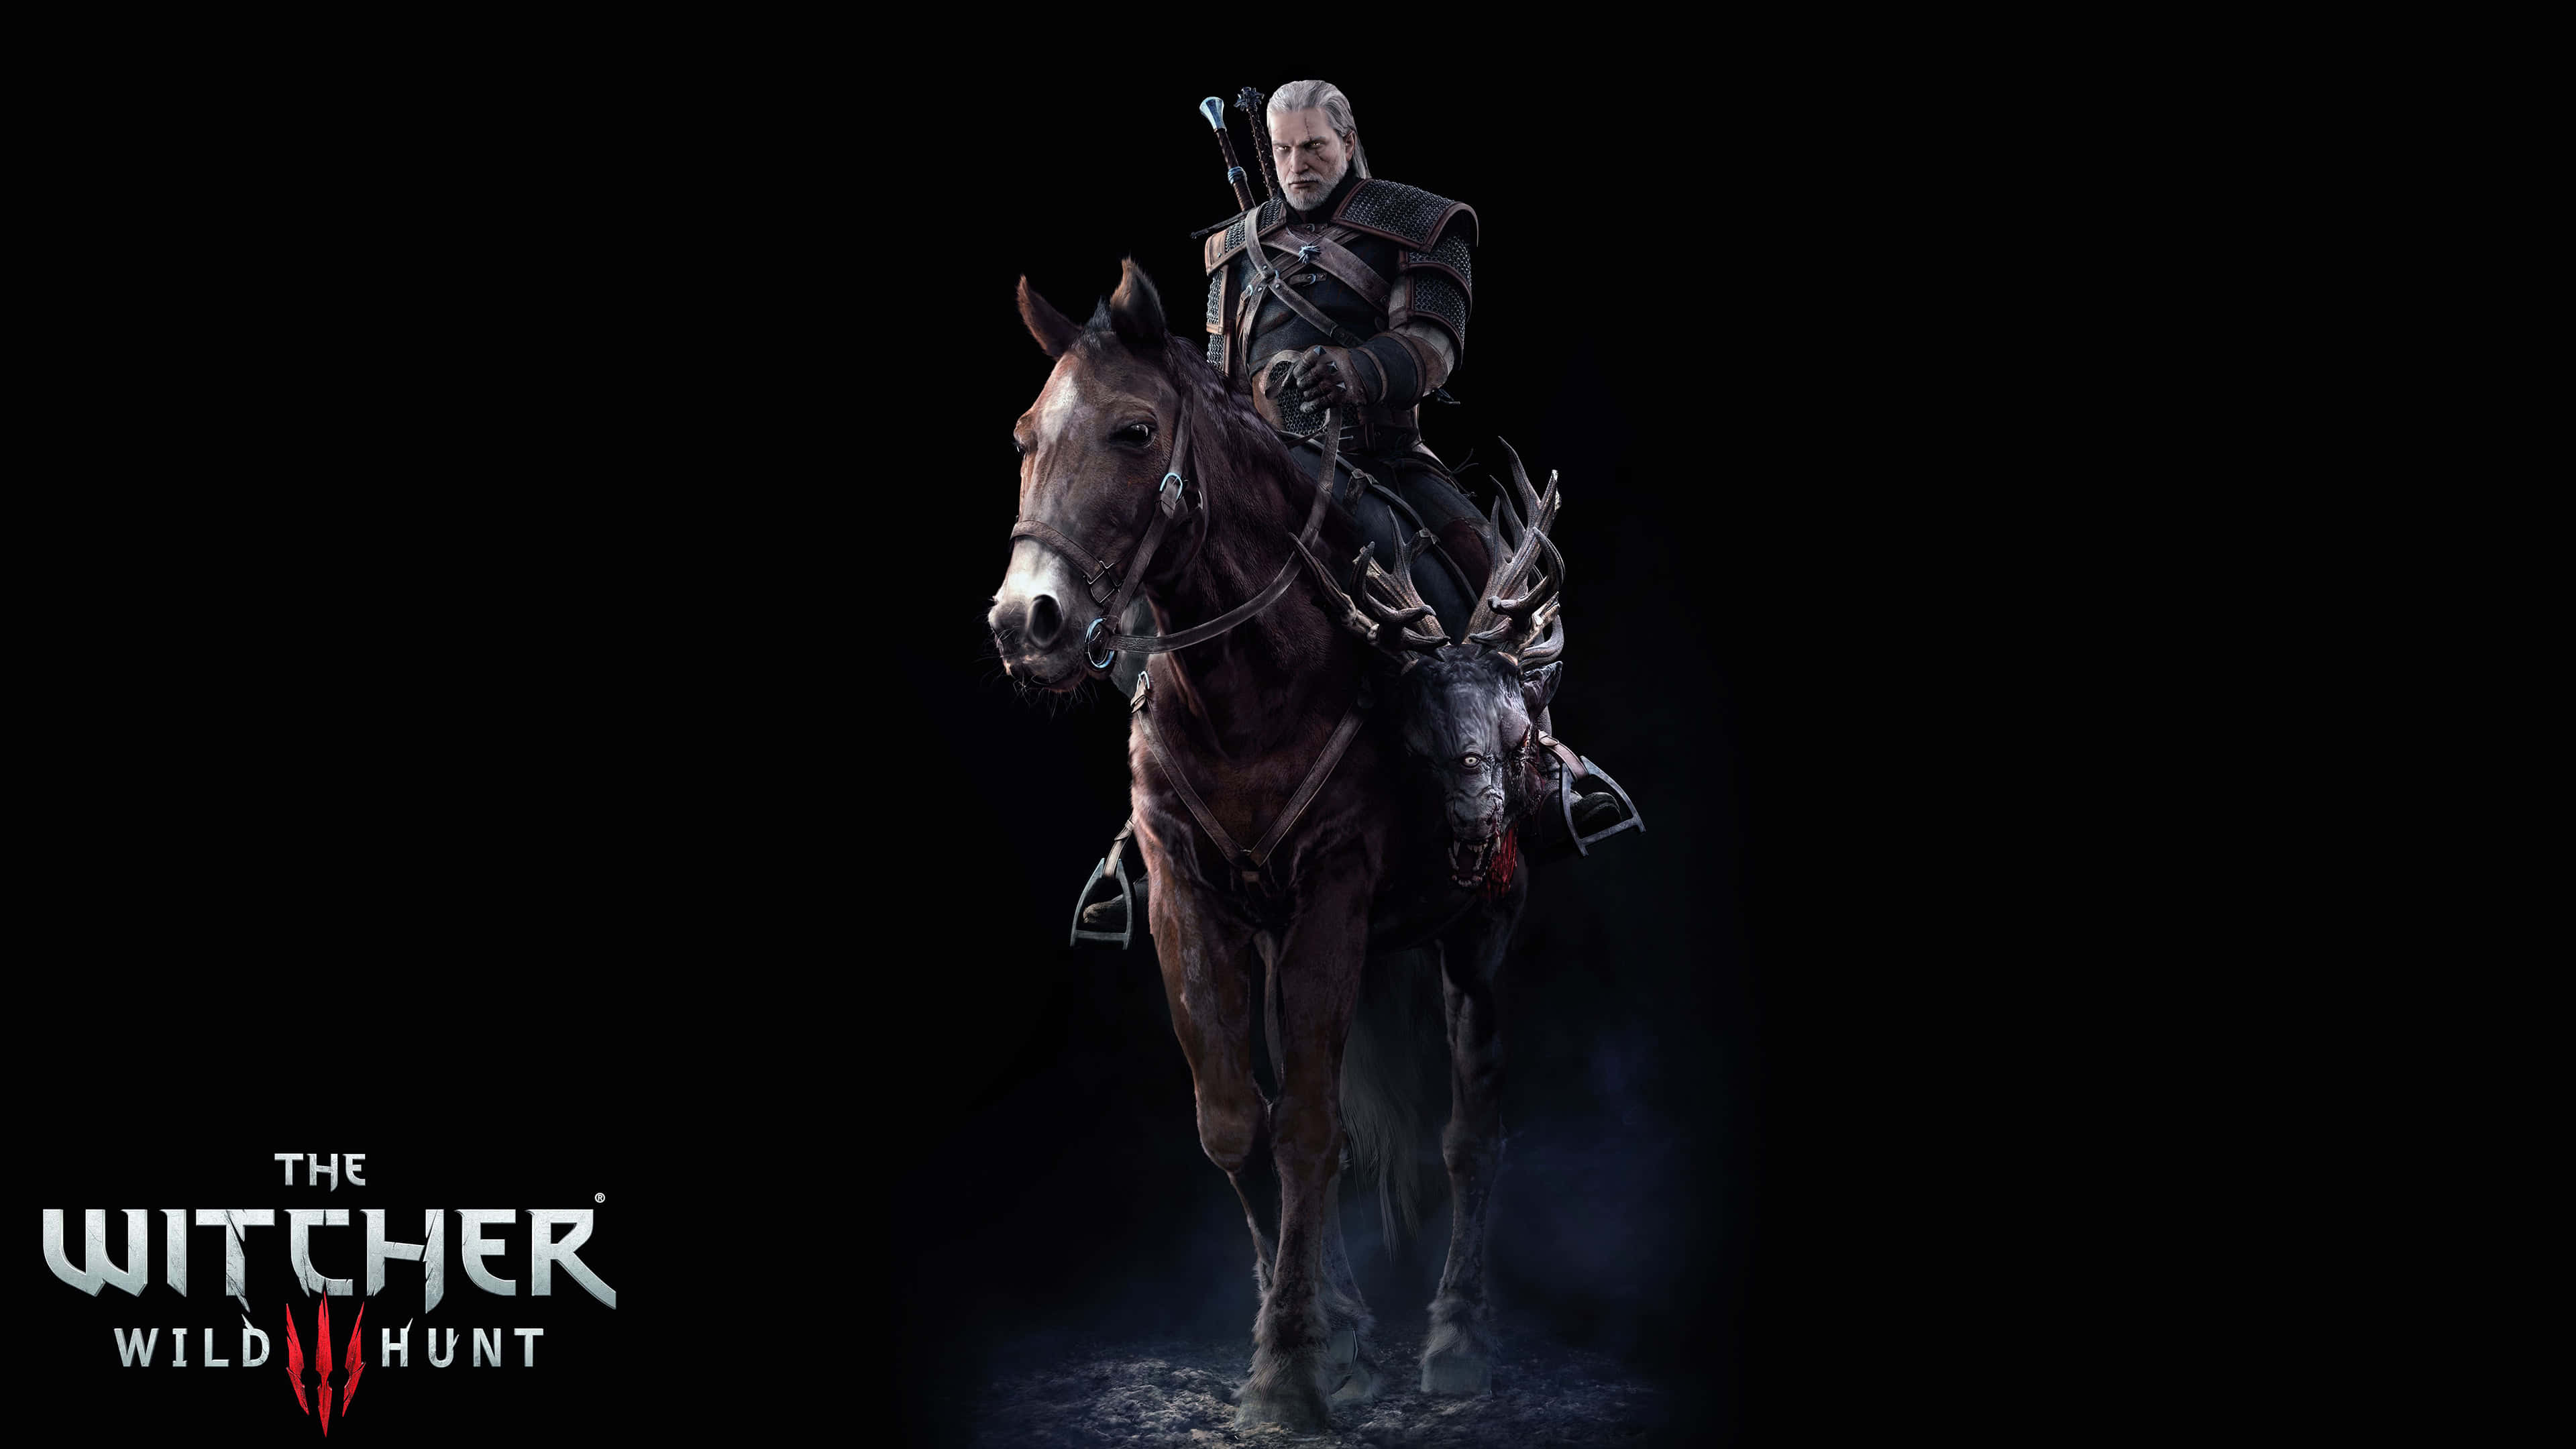 the witcher 3 wild hunt geralt and roach uhd 4k wallpaper